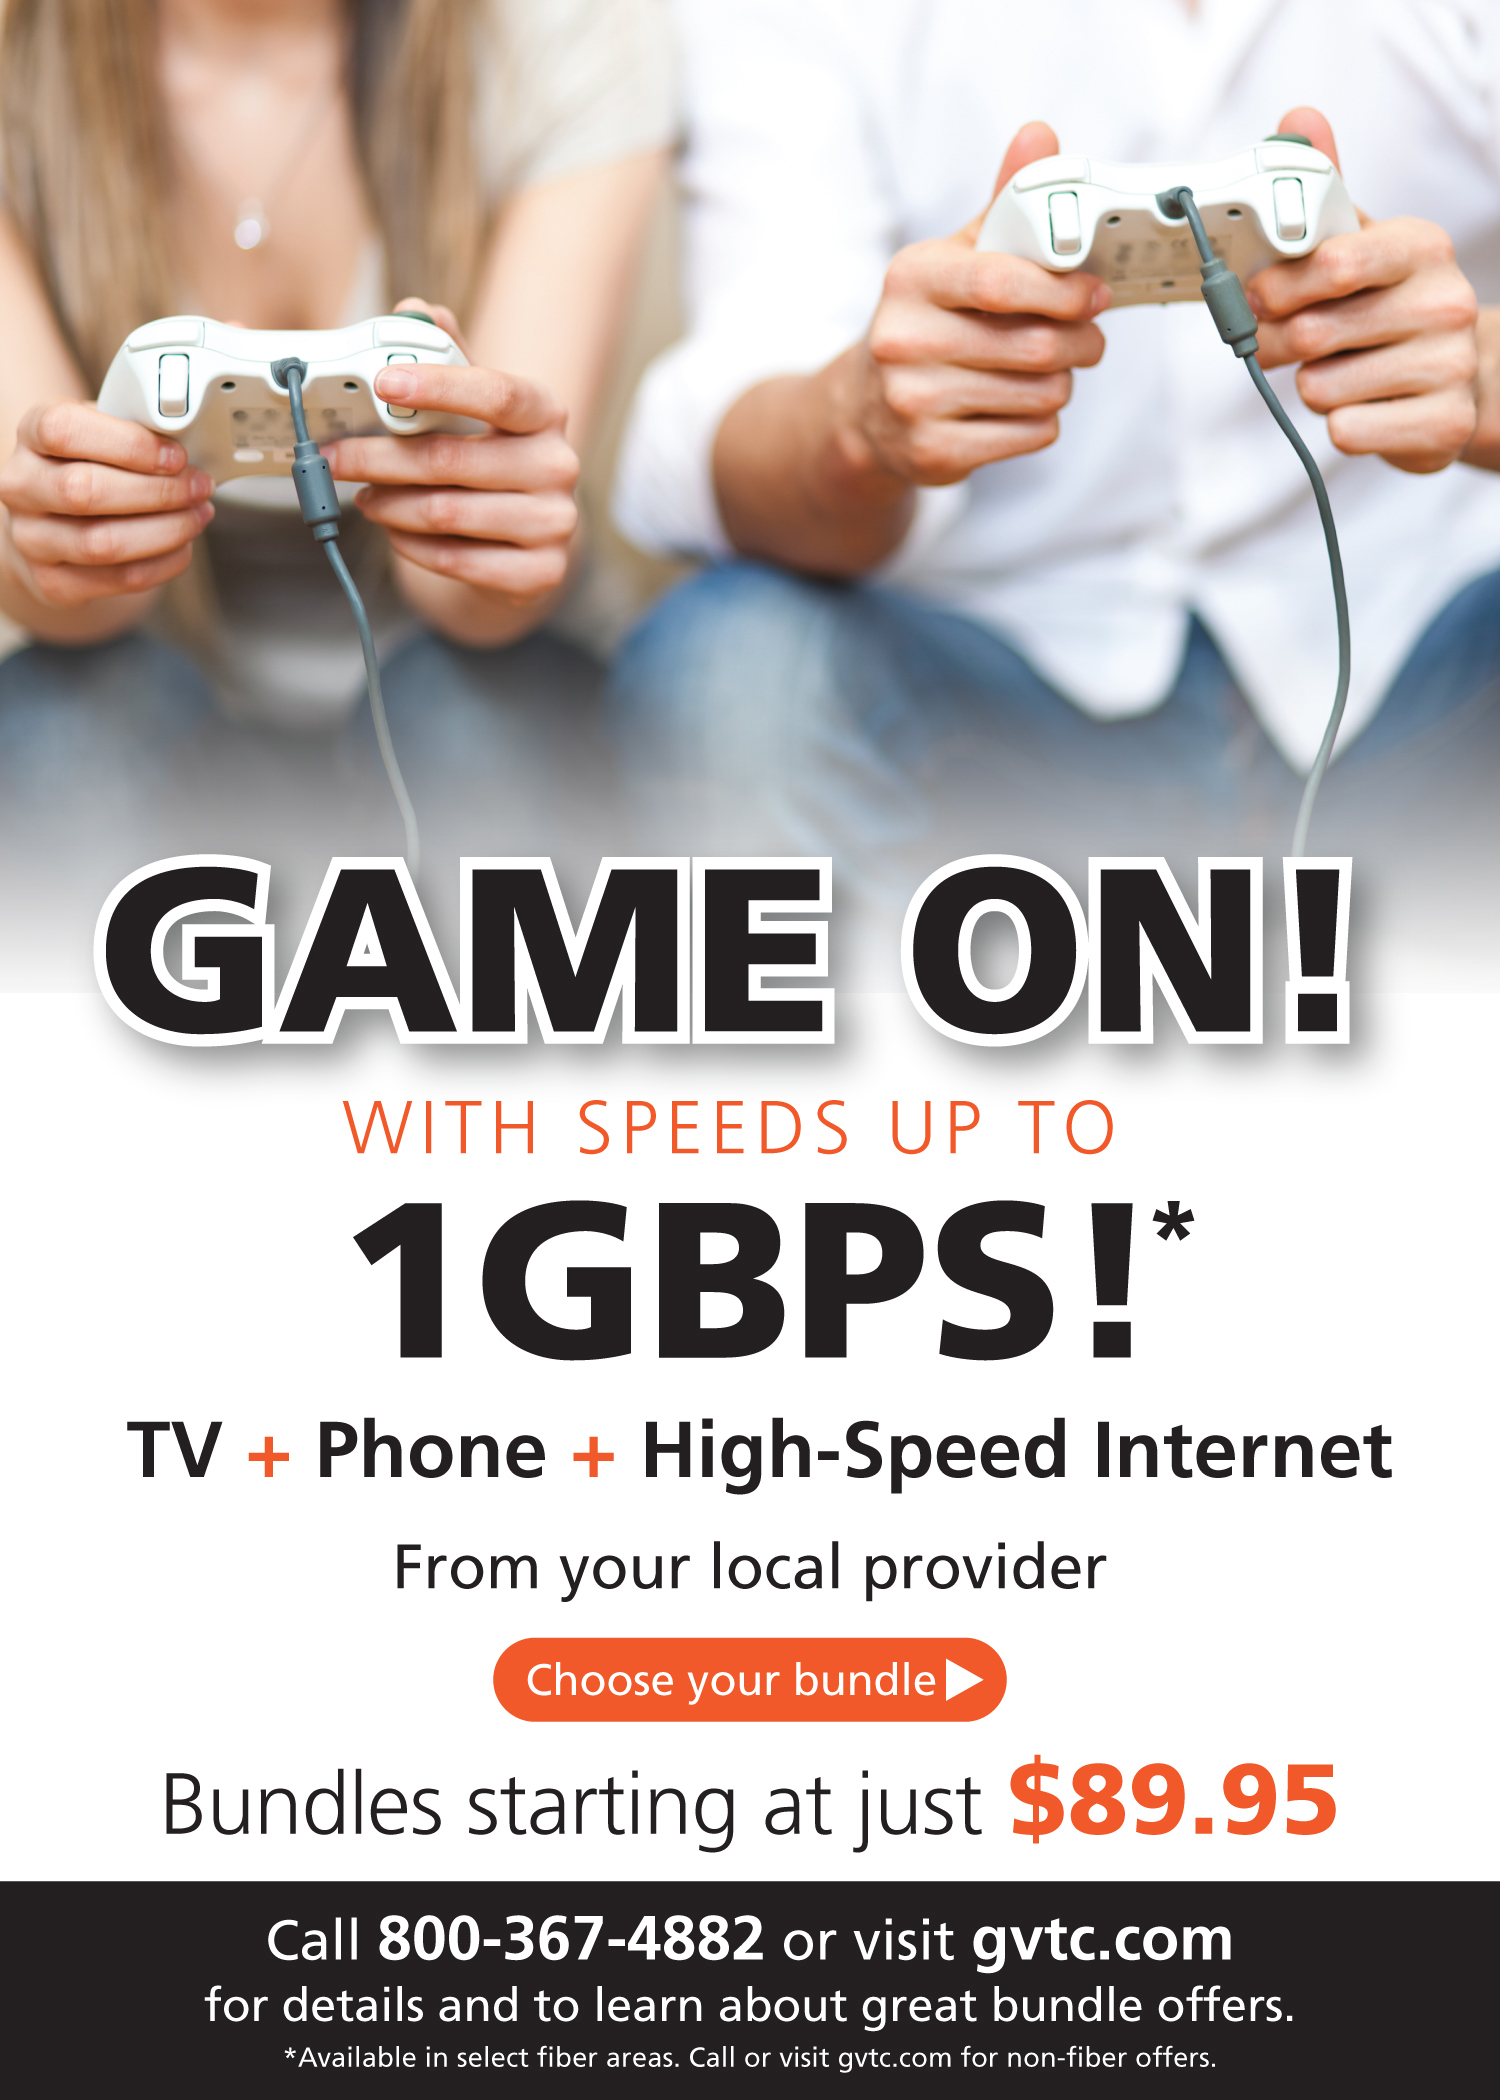 GAME ON with speeds up to 1GBPS! | Bundles starting at just $89.95